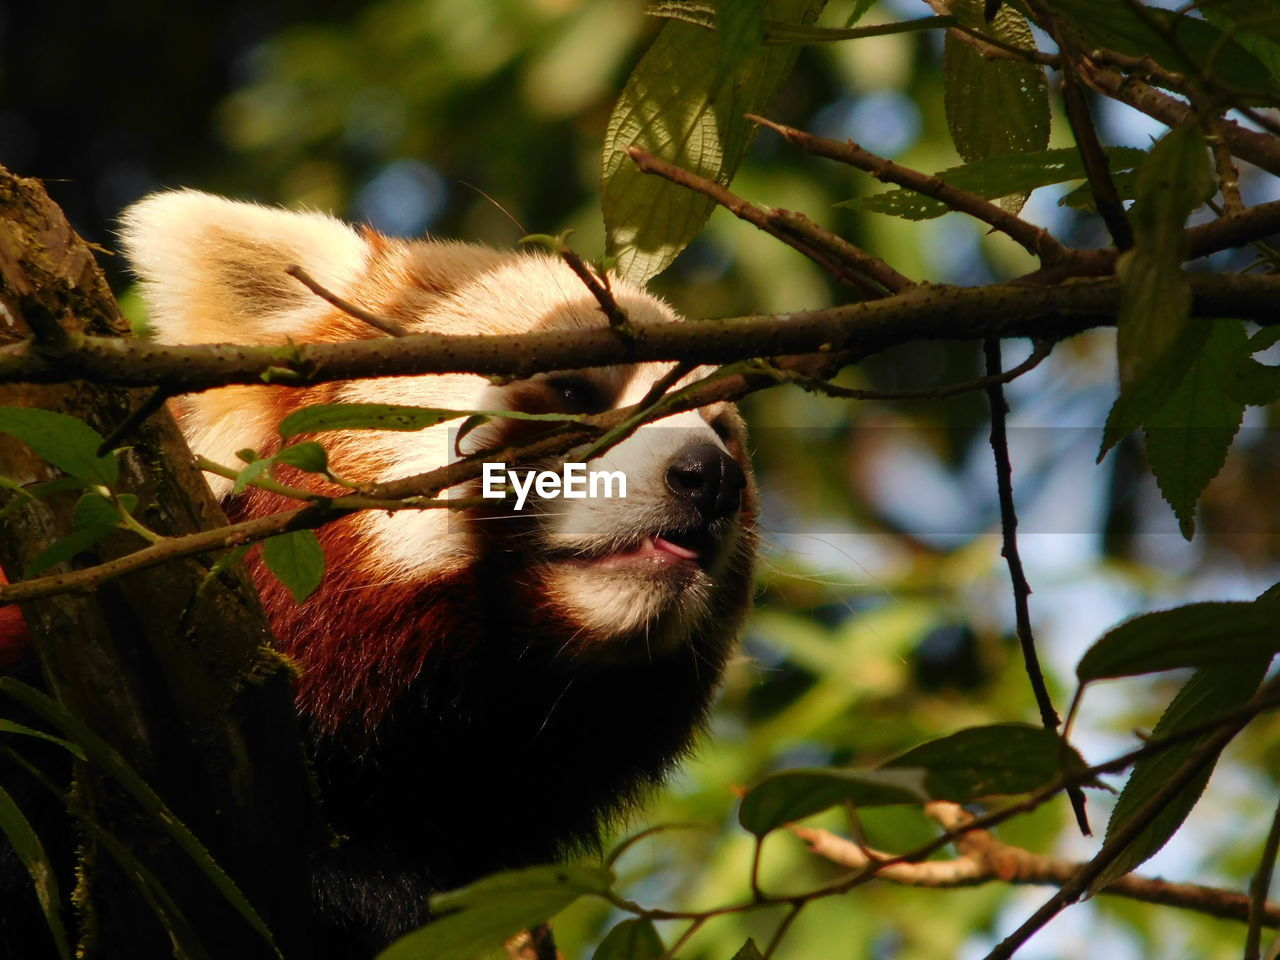 animal themes, one animal, animal, plant, tree, mammal, branch, vertebrate, focus on foreground, animal wildlife, animals in the wild, no people, nature, leaf, plant part, day, close-up, low angle view, outdoors, selective focus, animal head, whisker